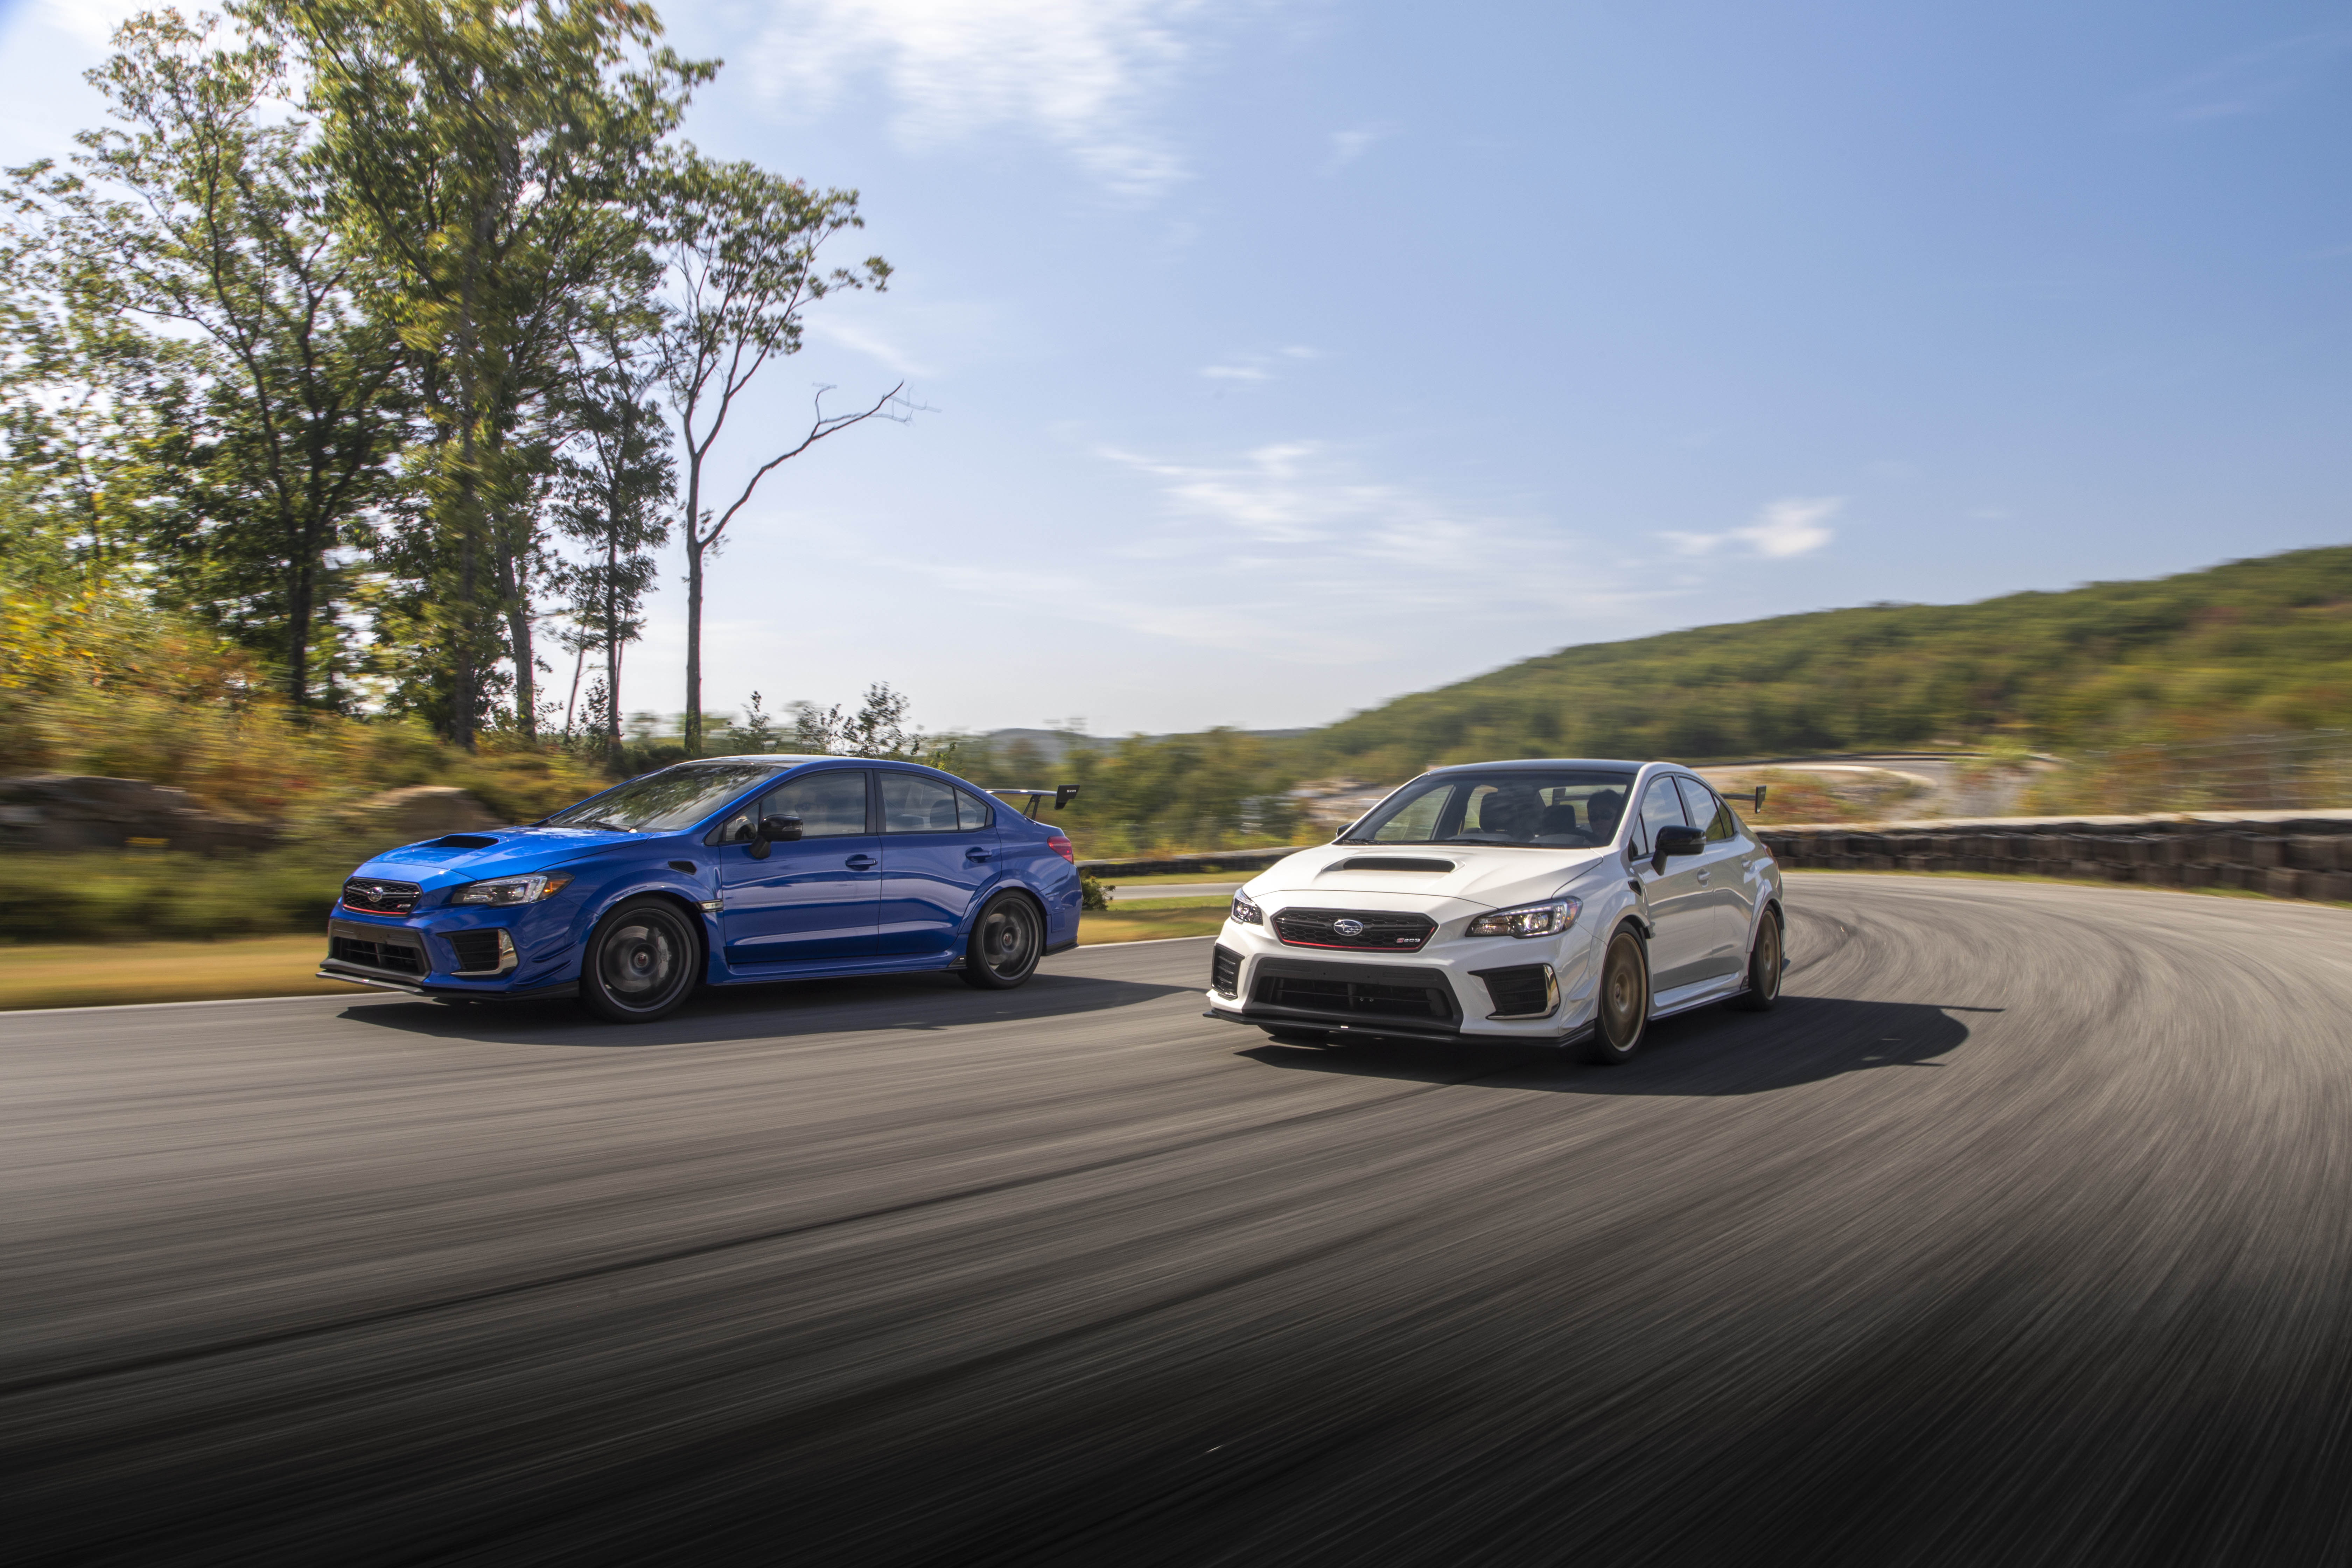 The Subaru STI S209 Is the Most Expensive Subaru Ever at Nearly $65K